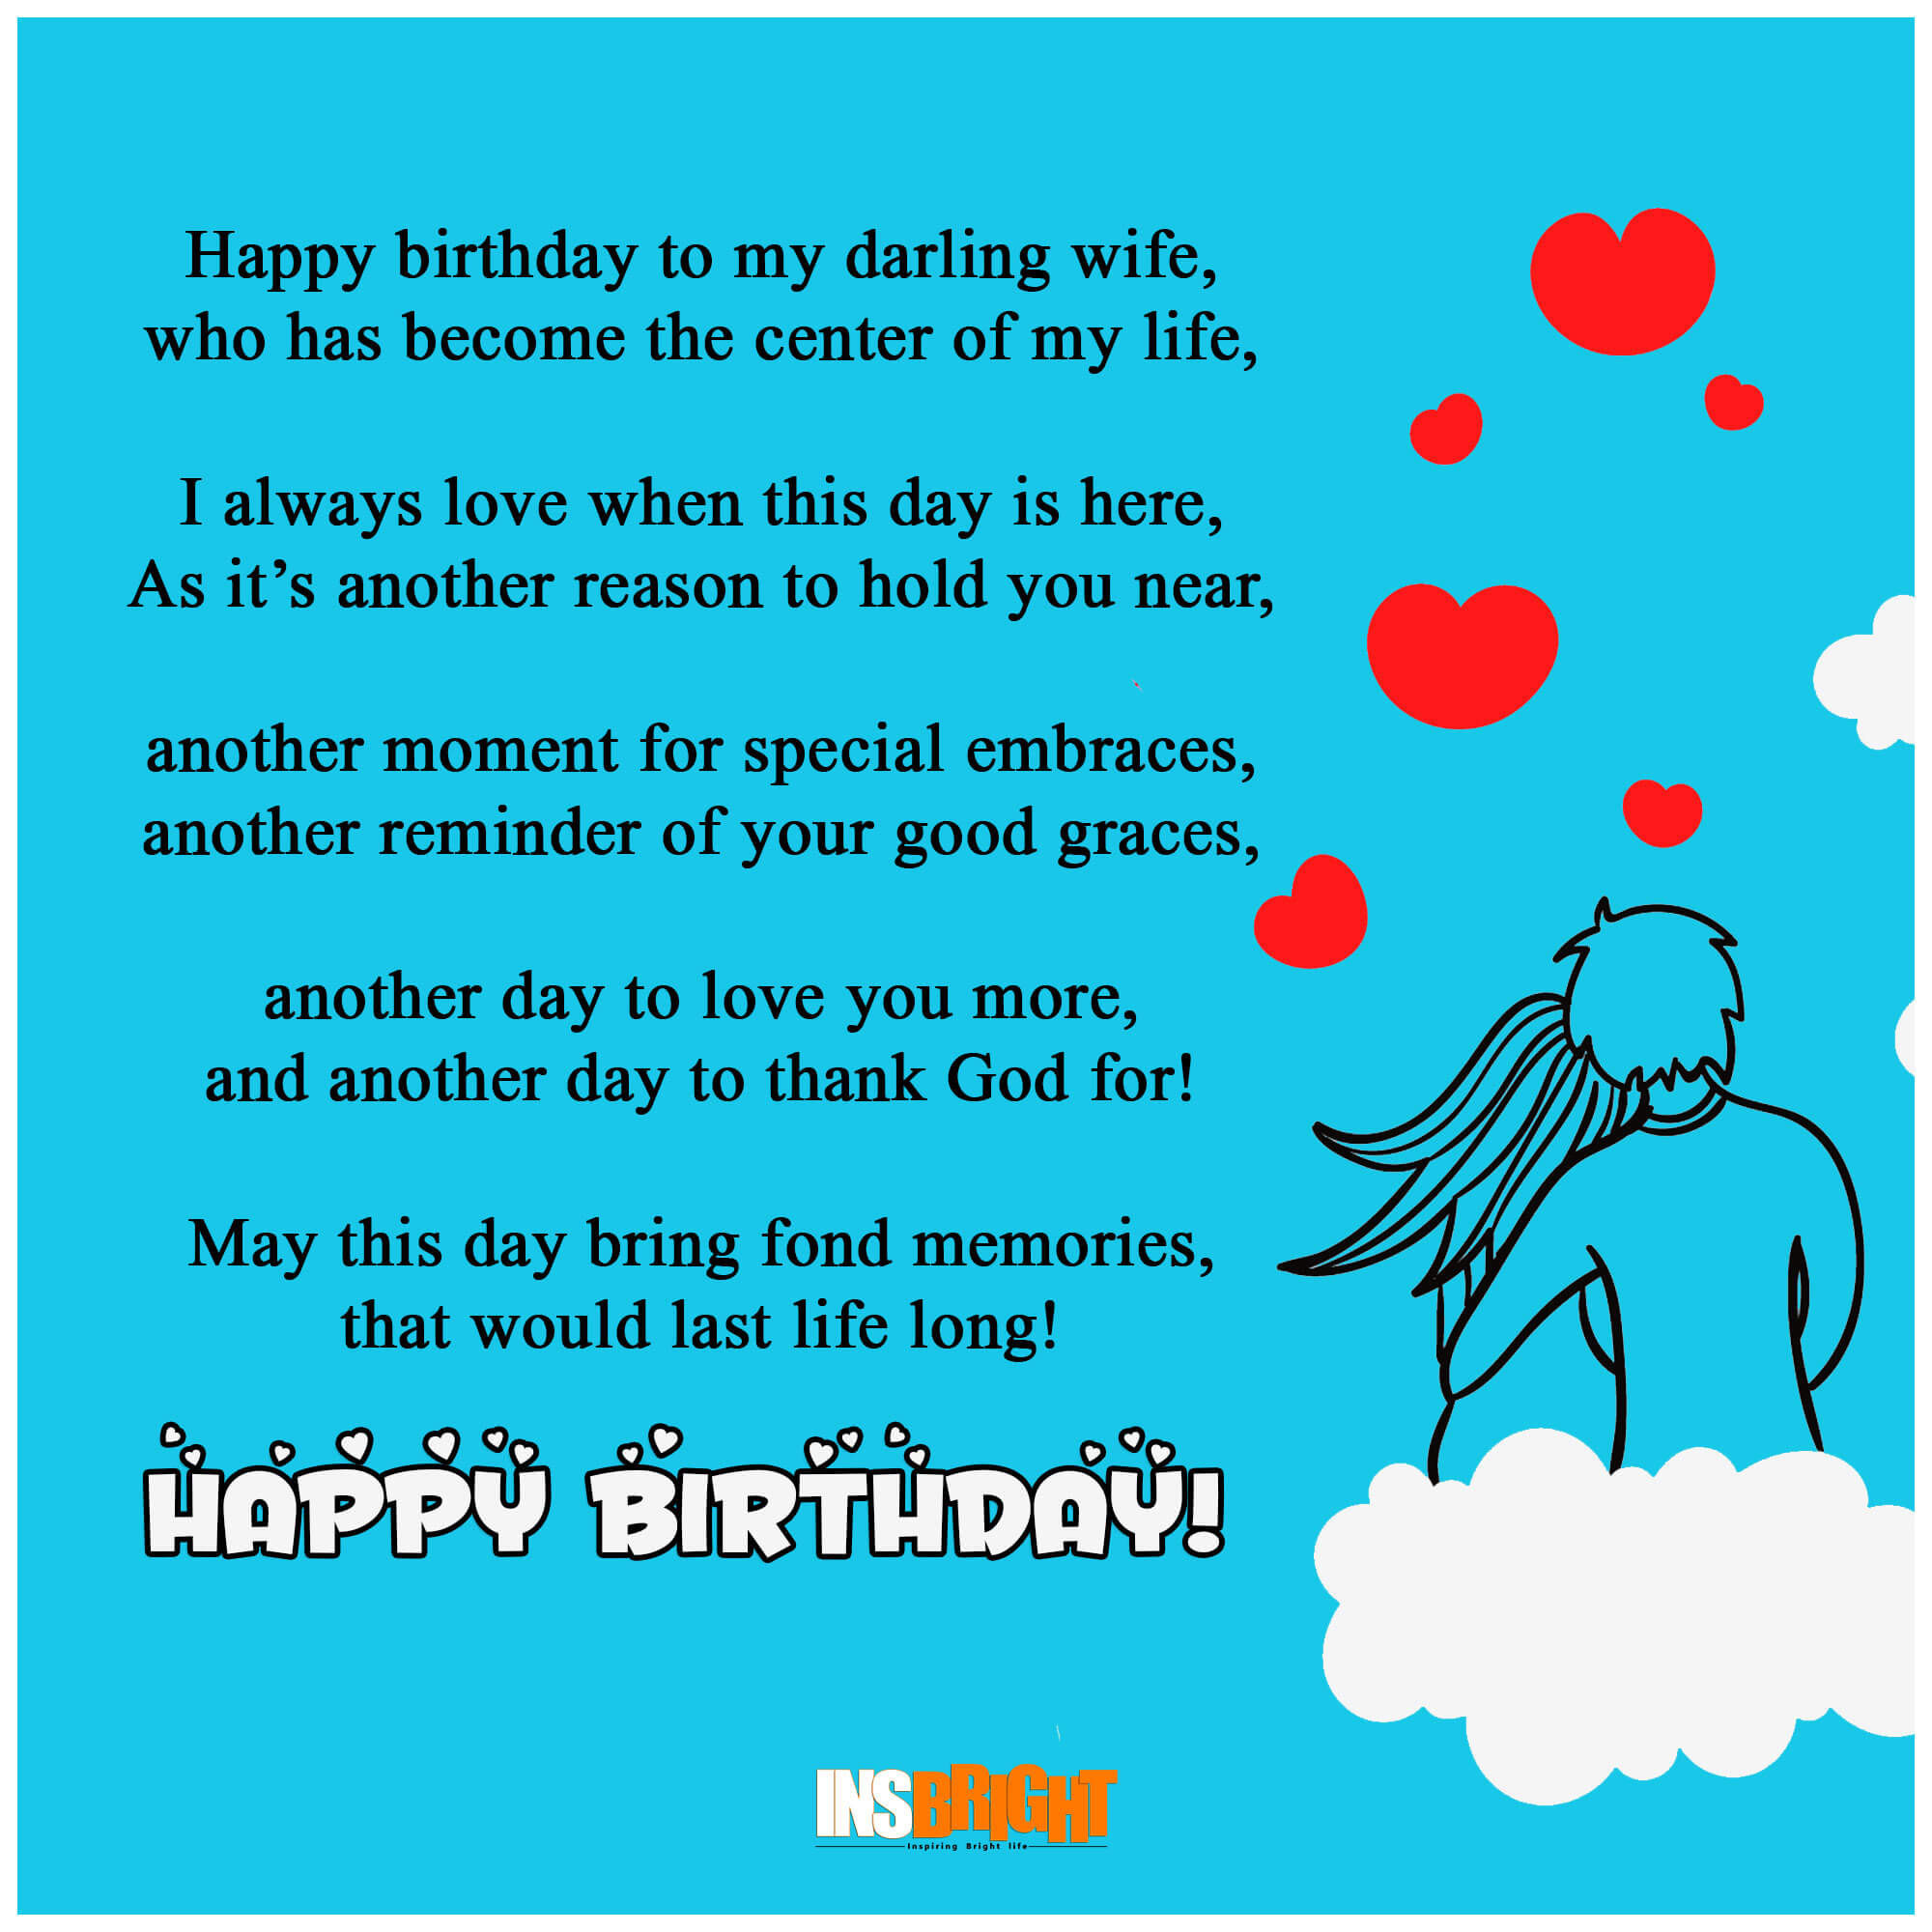 Birthday Poem Funny  10 Romantic Happy Birthday Poems For Wife With Love From